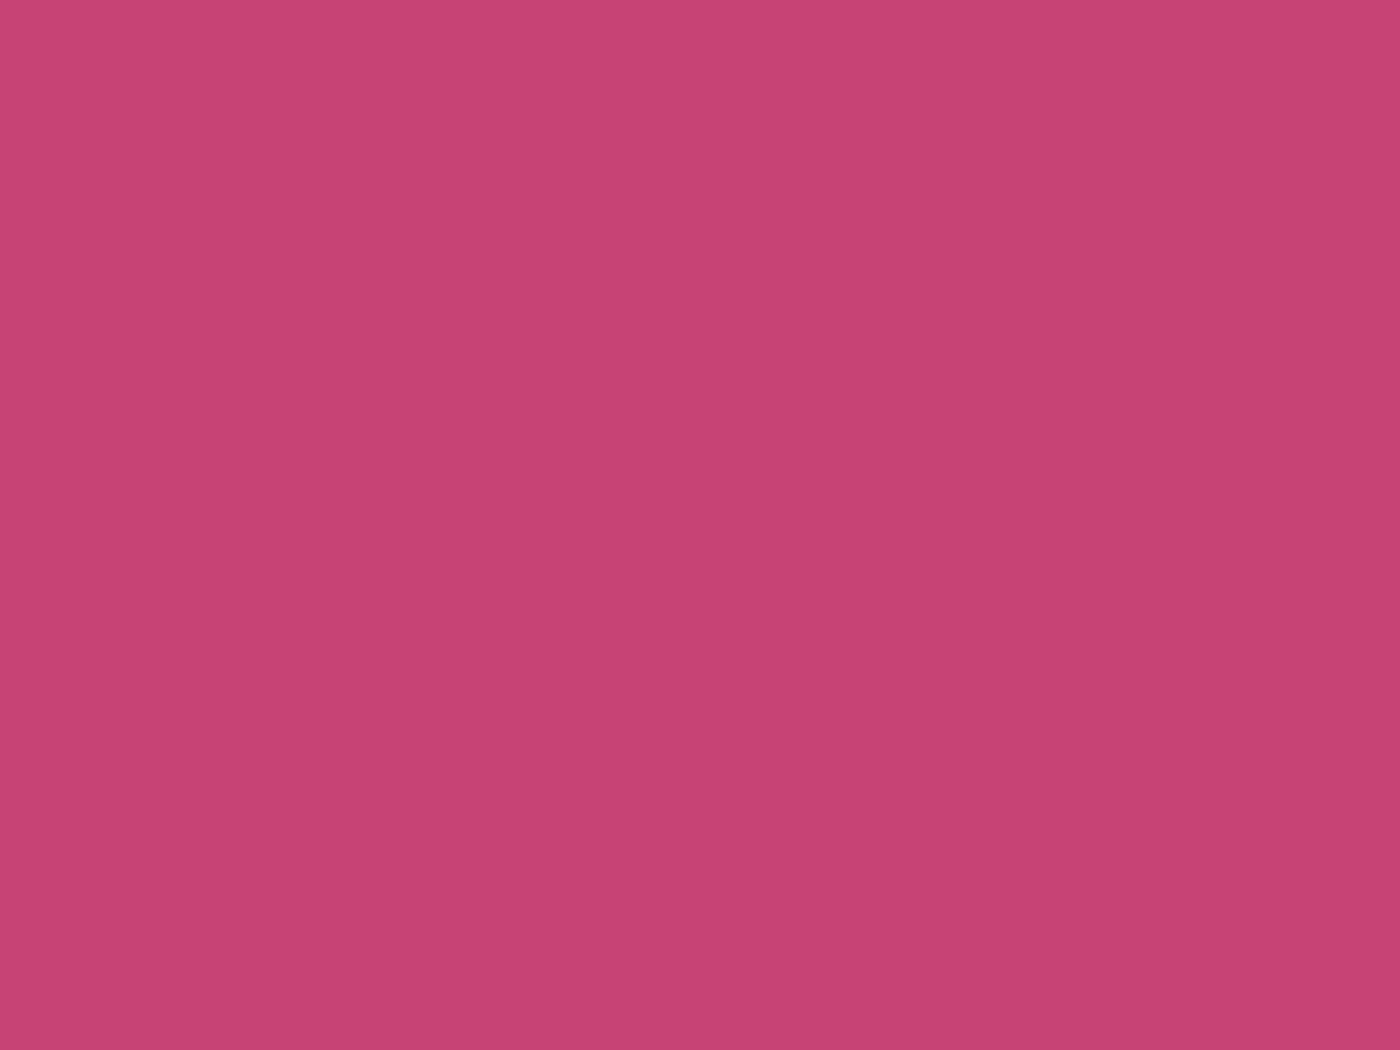 1400x1050 Fuchsia Rose Solid Color Background